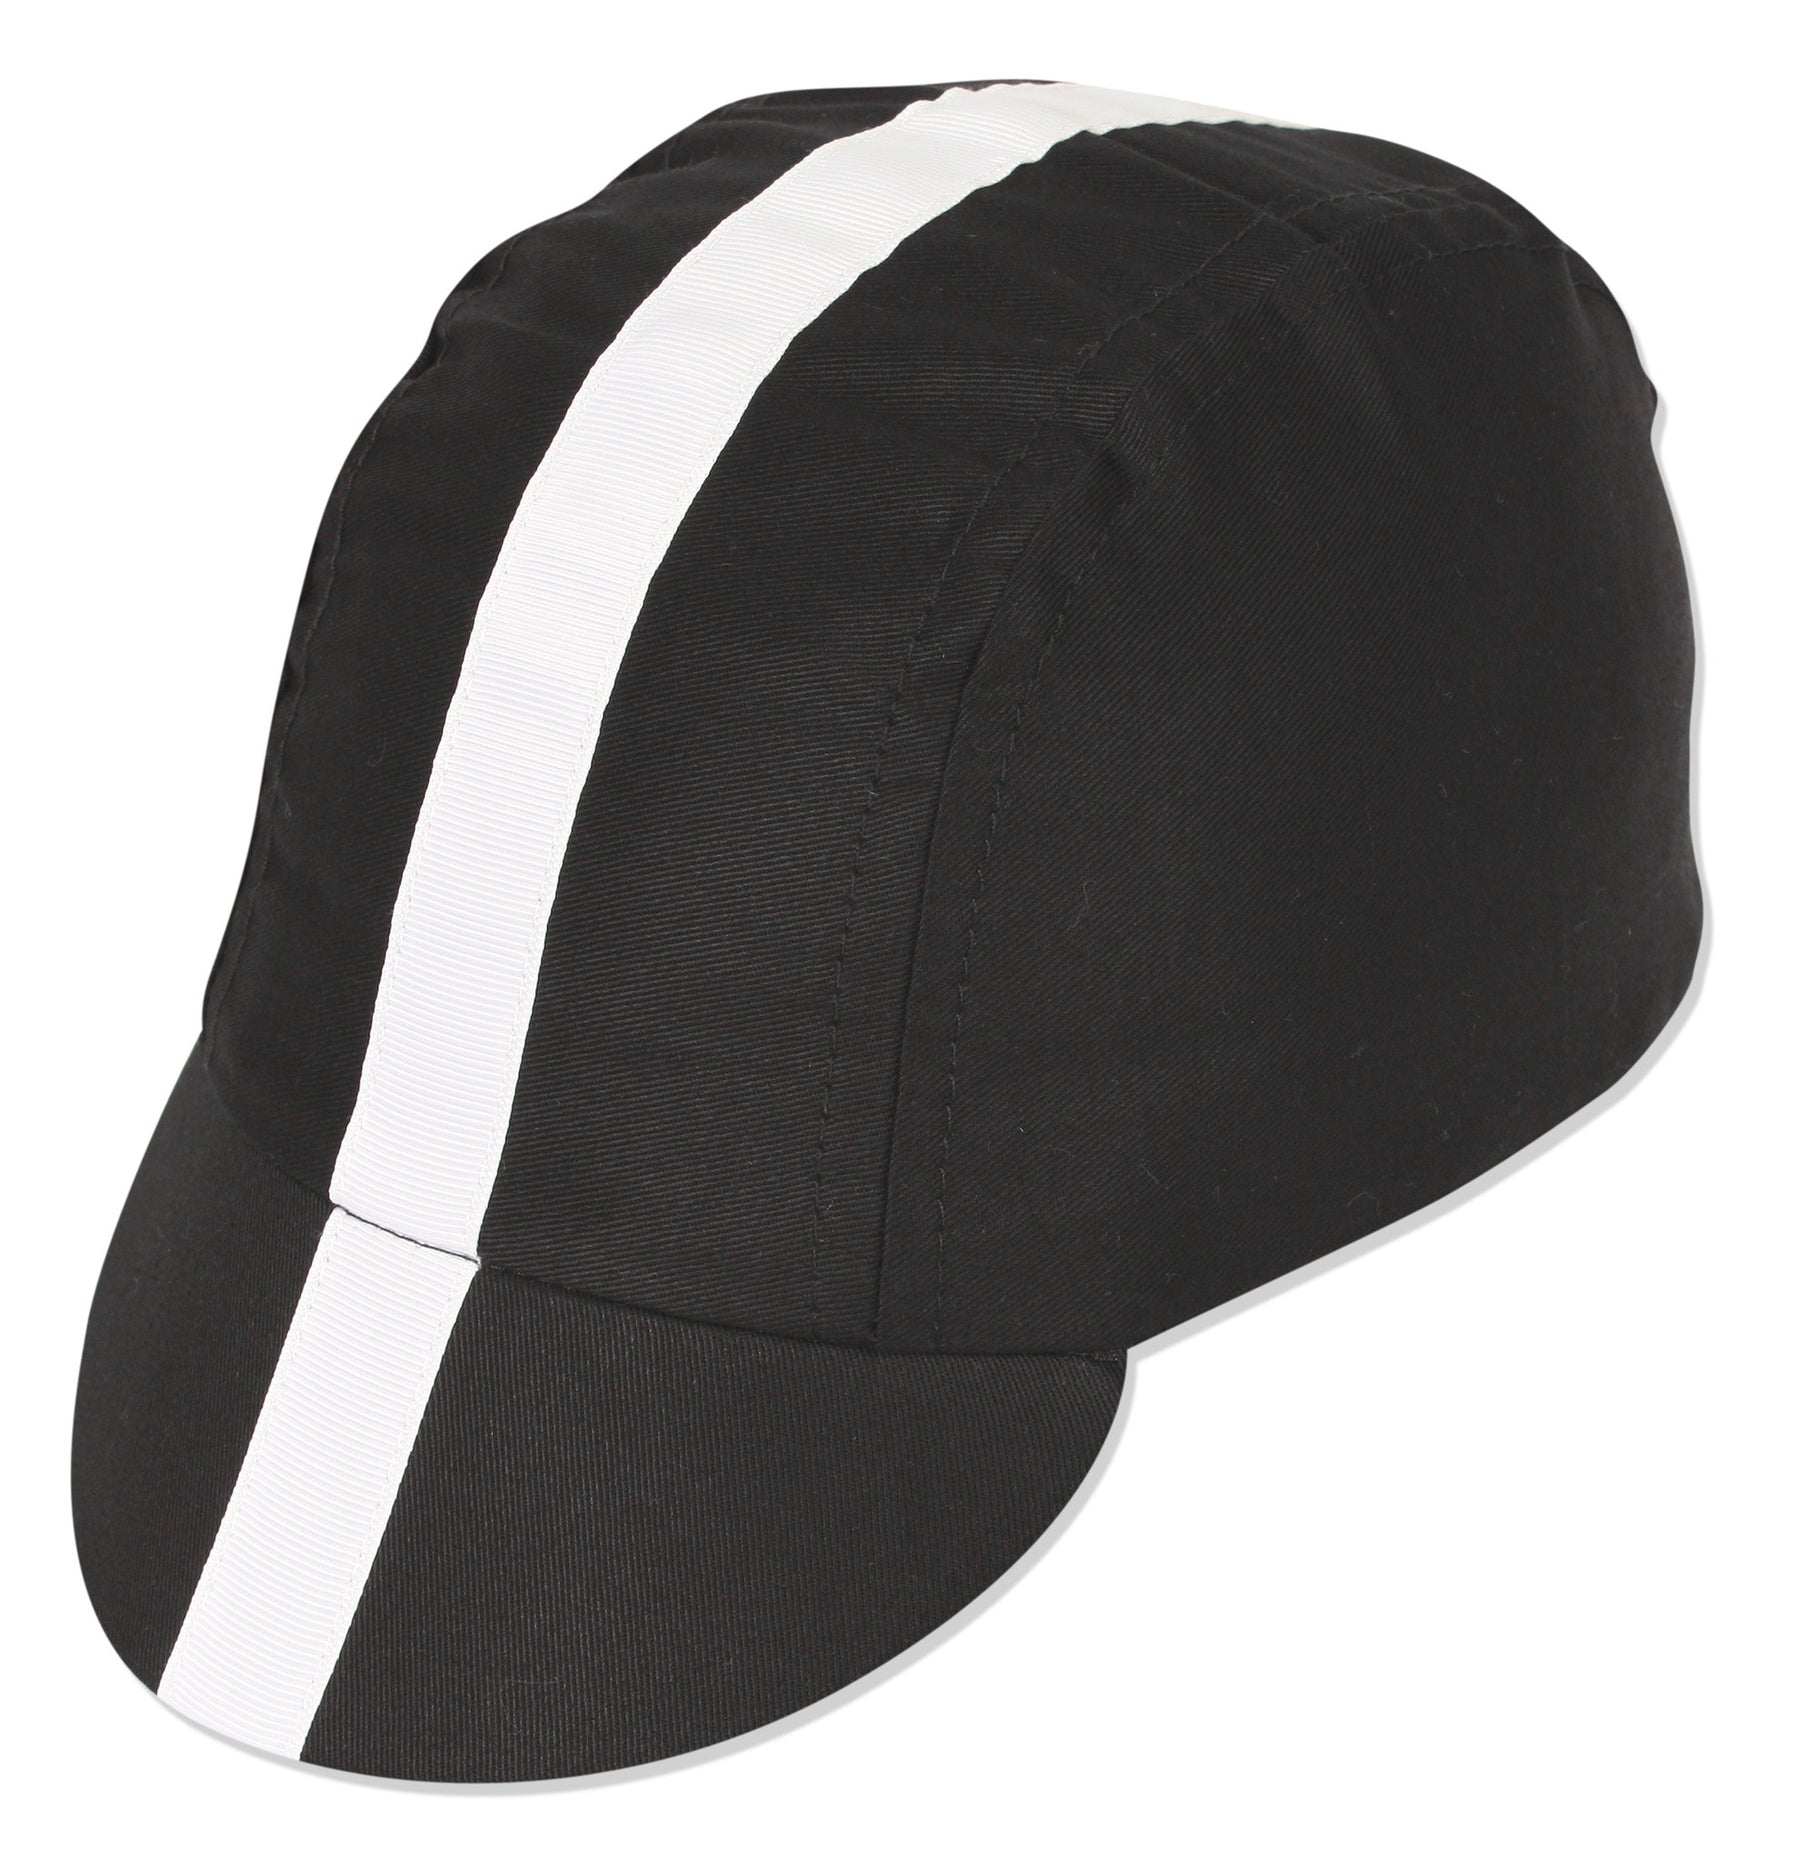 Classic Cycling Cap - Blk Wht – pacesportswear 01cee9745